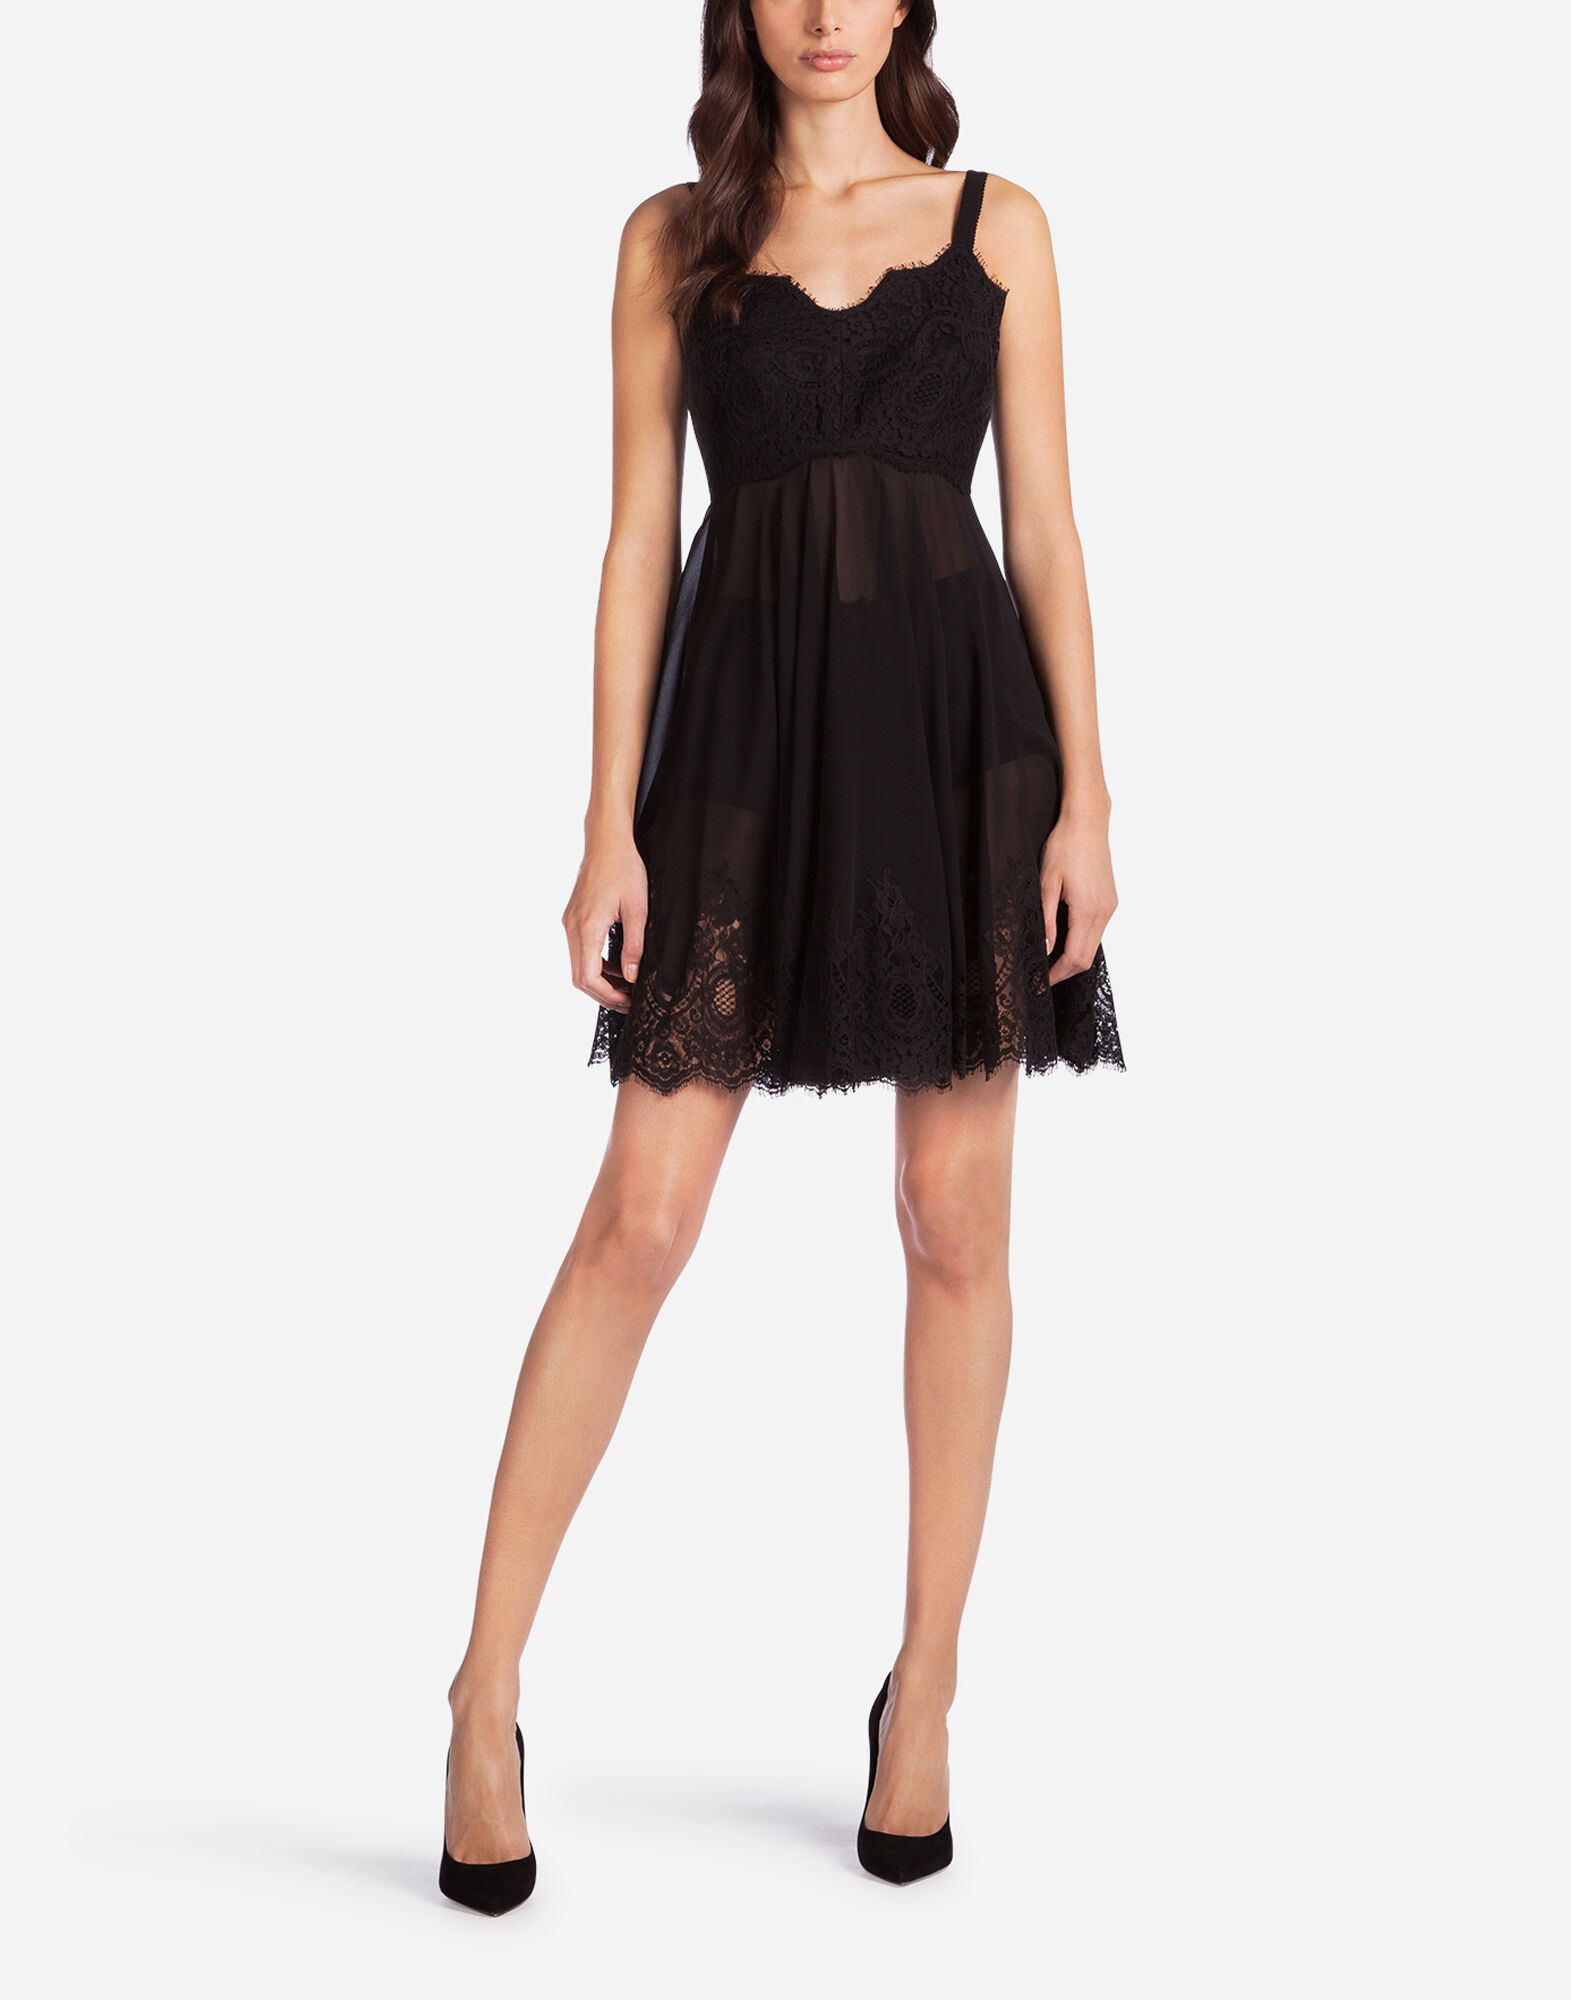 SILK LINGERIE DRESS WITH LACE DETAIL